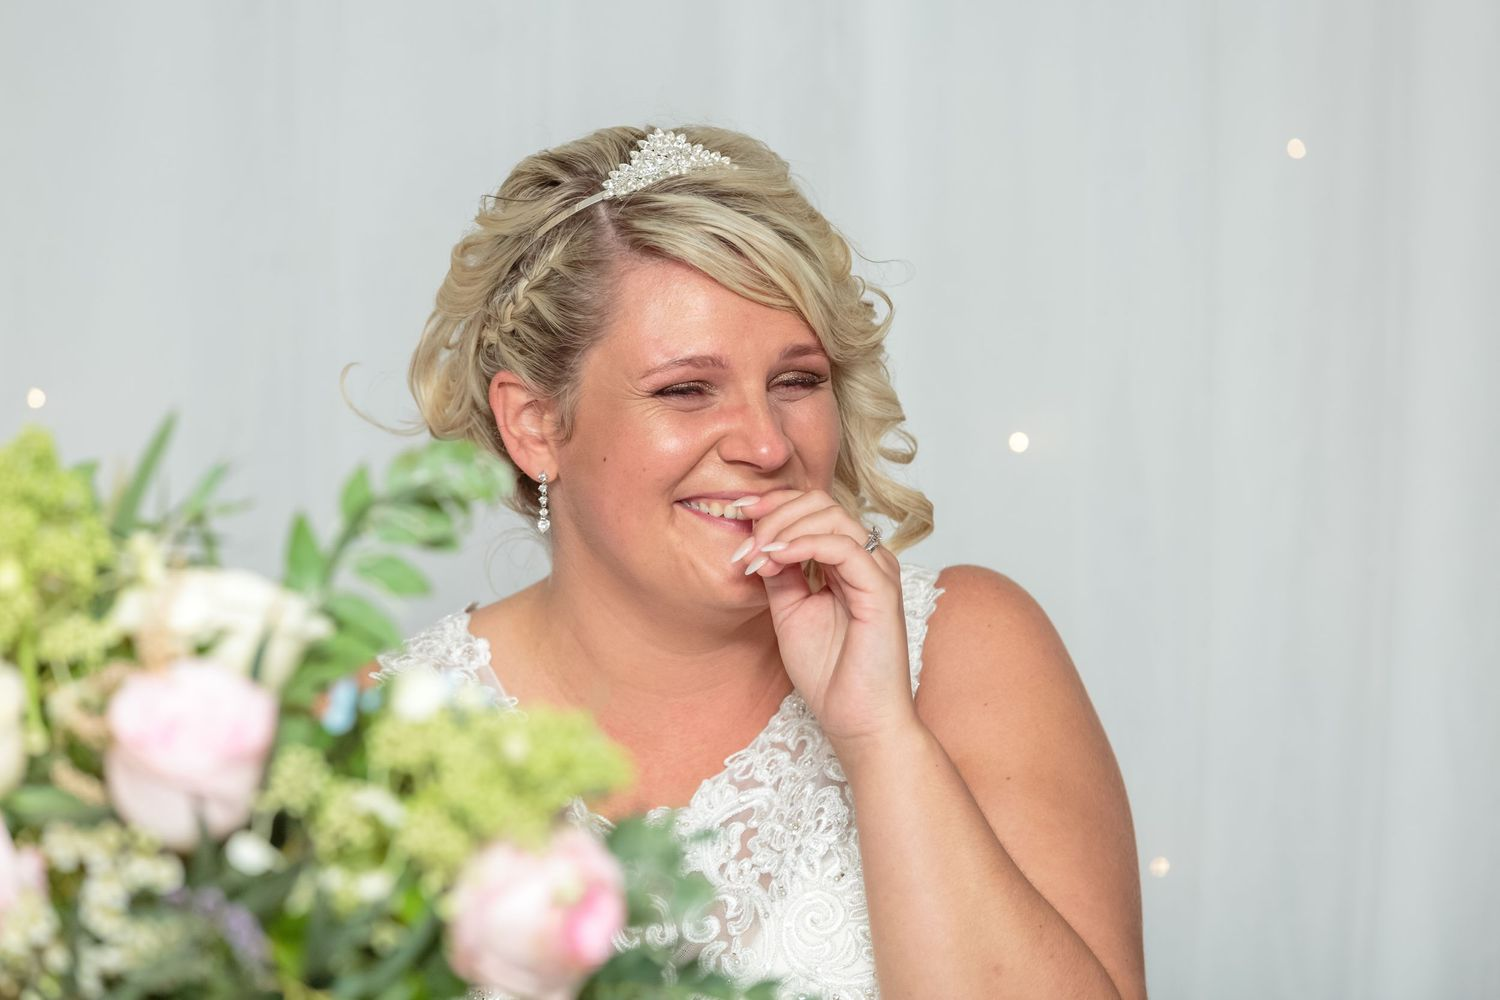 bride laughing with tears in her eyes puts her hand to her mouth during the wedding speech